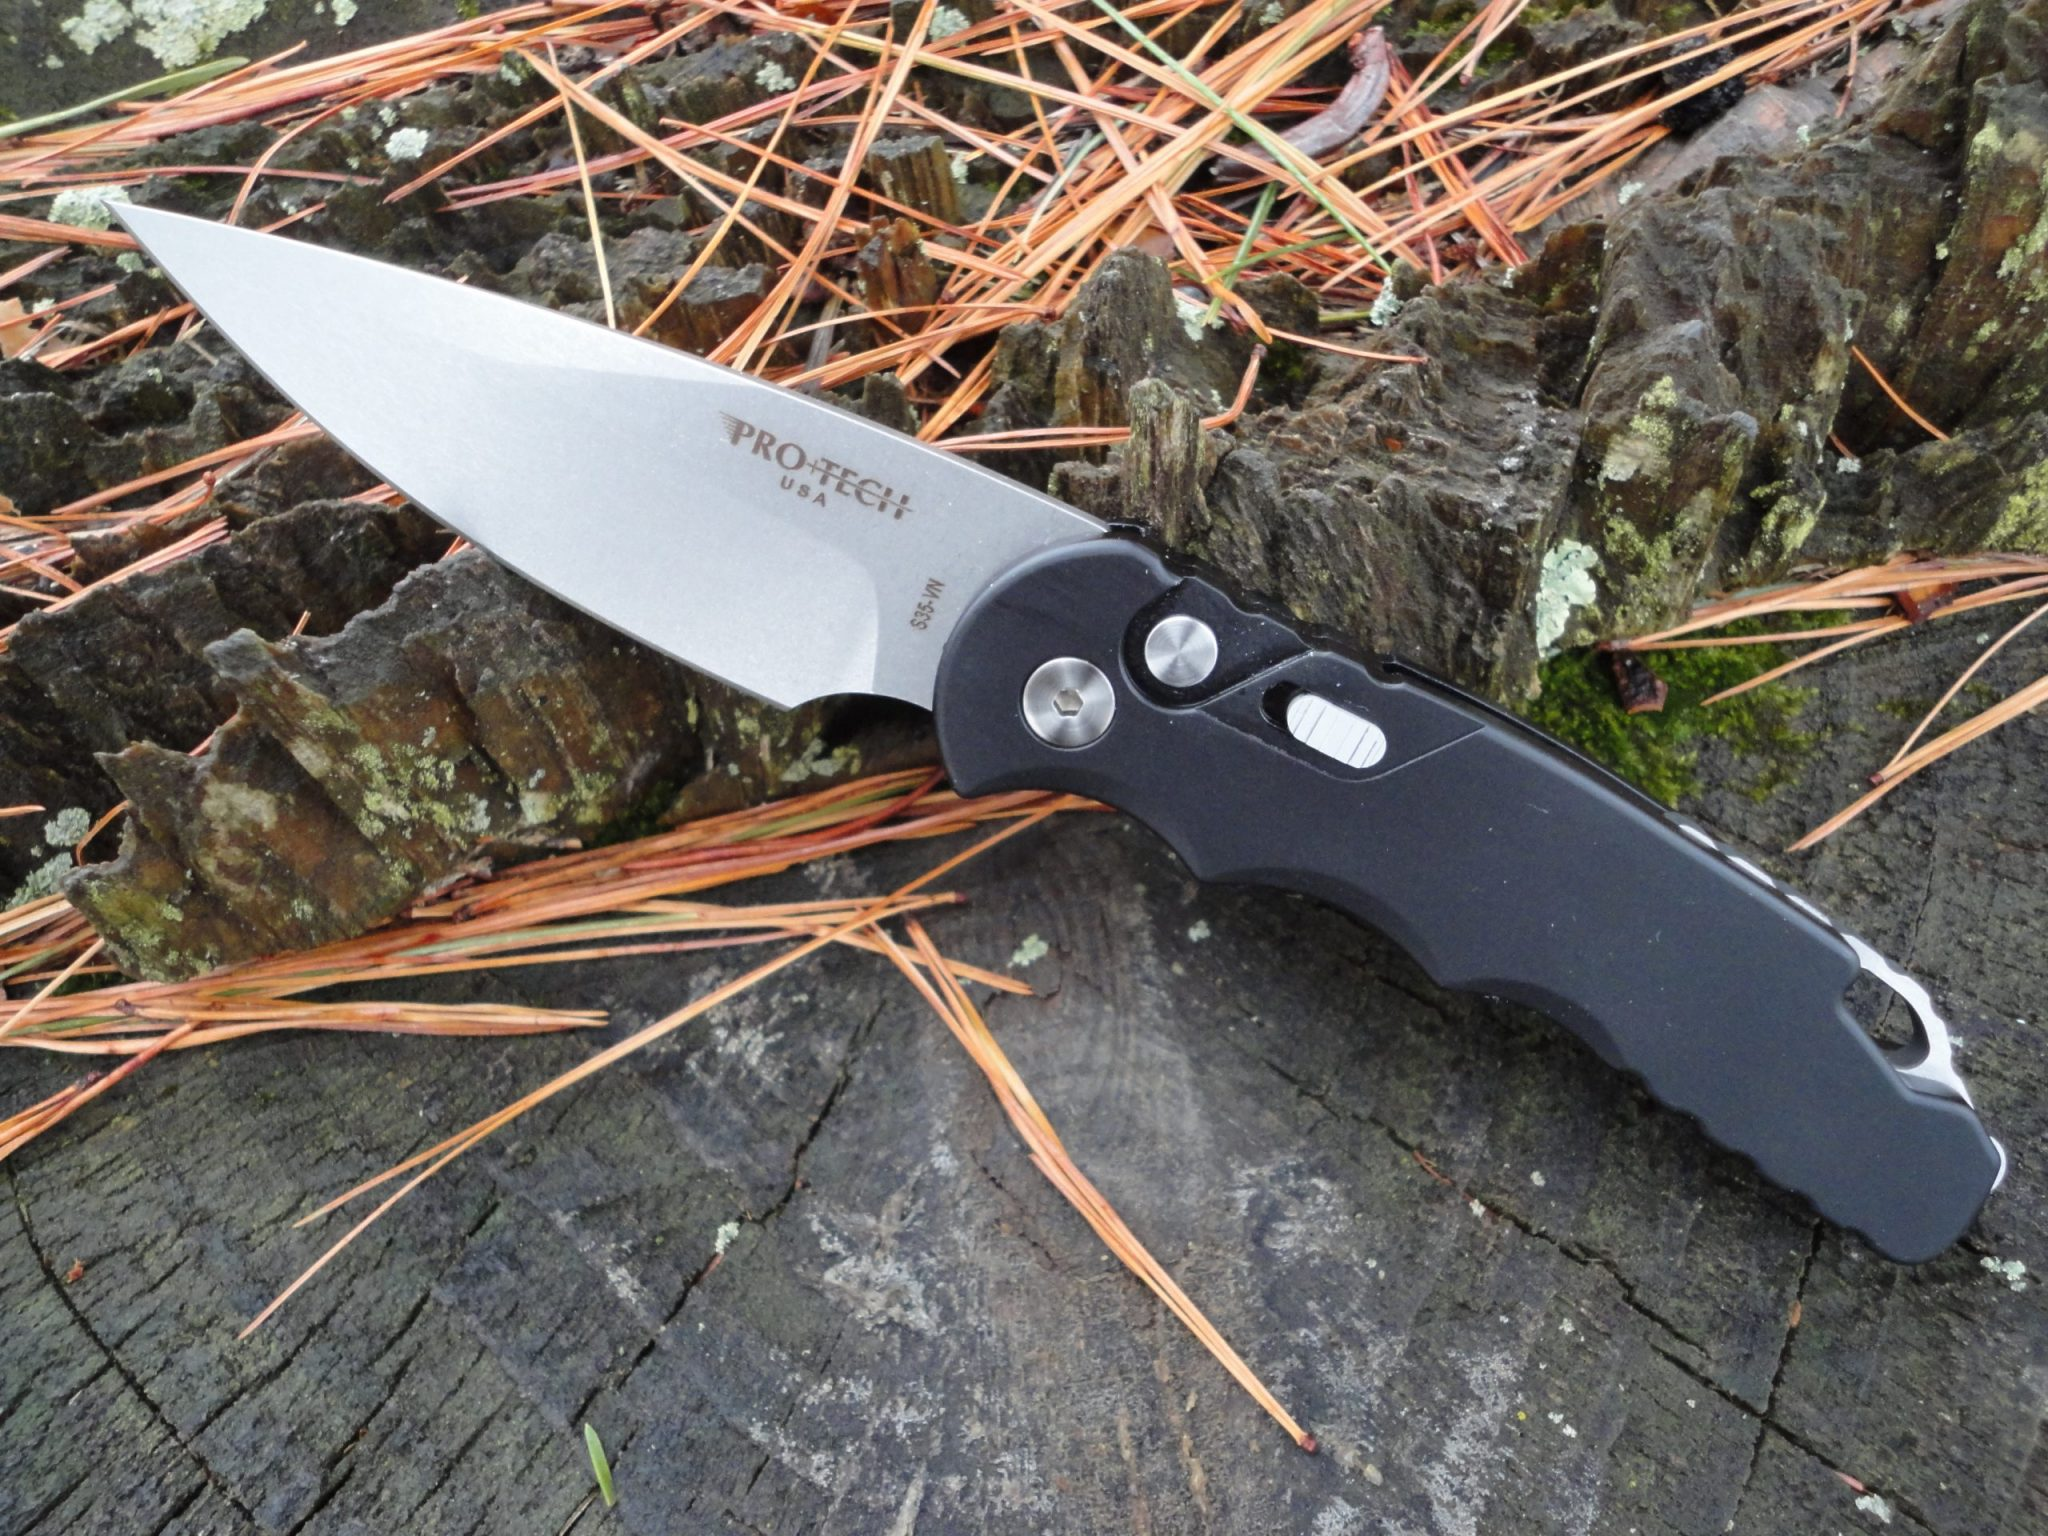 ProTech T501 Tactical Response 5